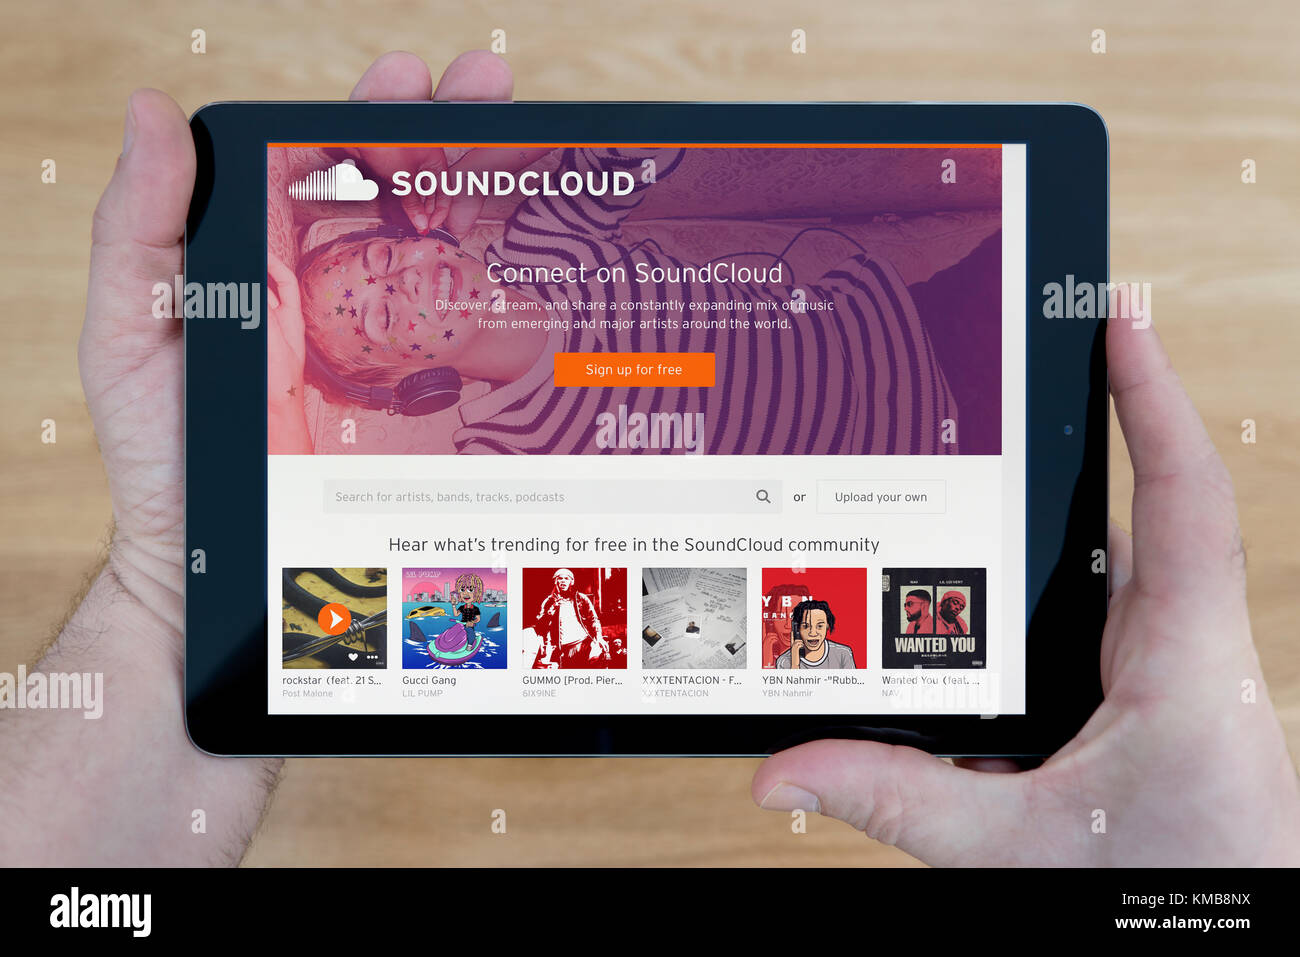 A man looks at the Soundcloud website on his iPad tablet